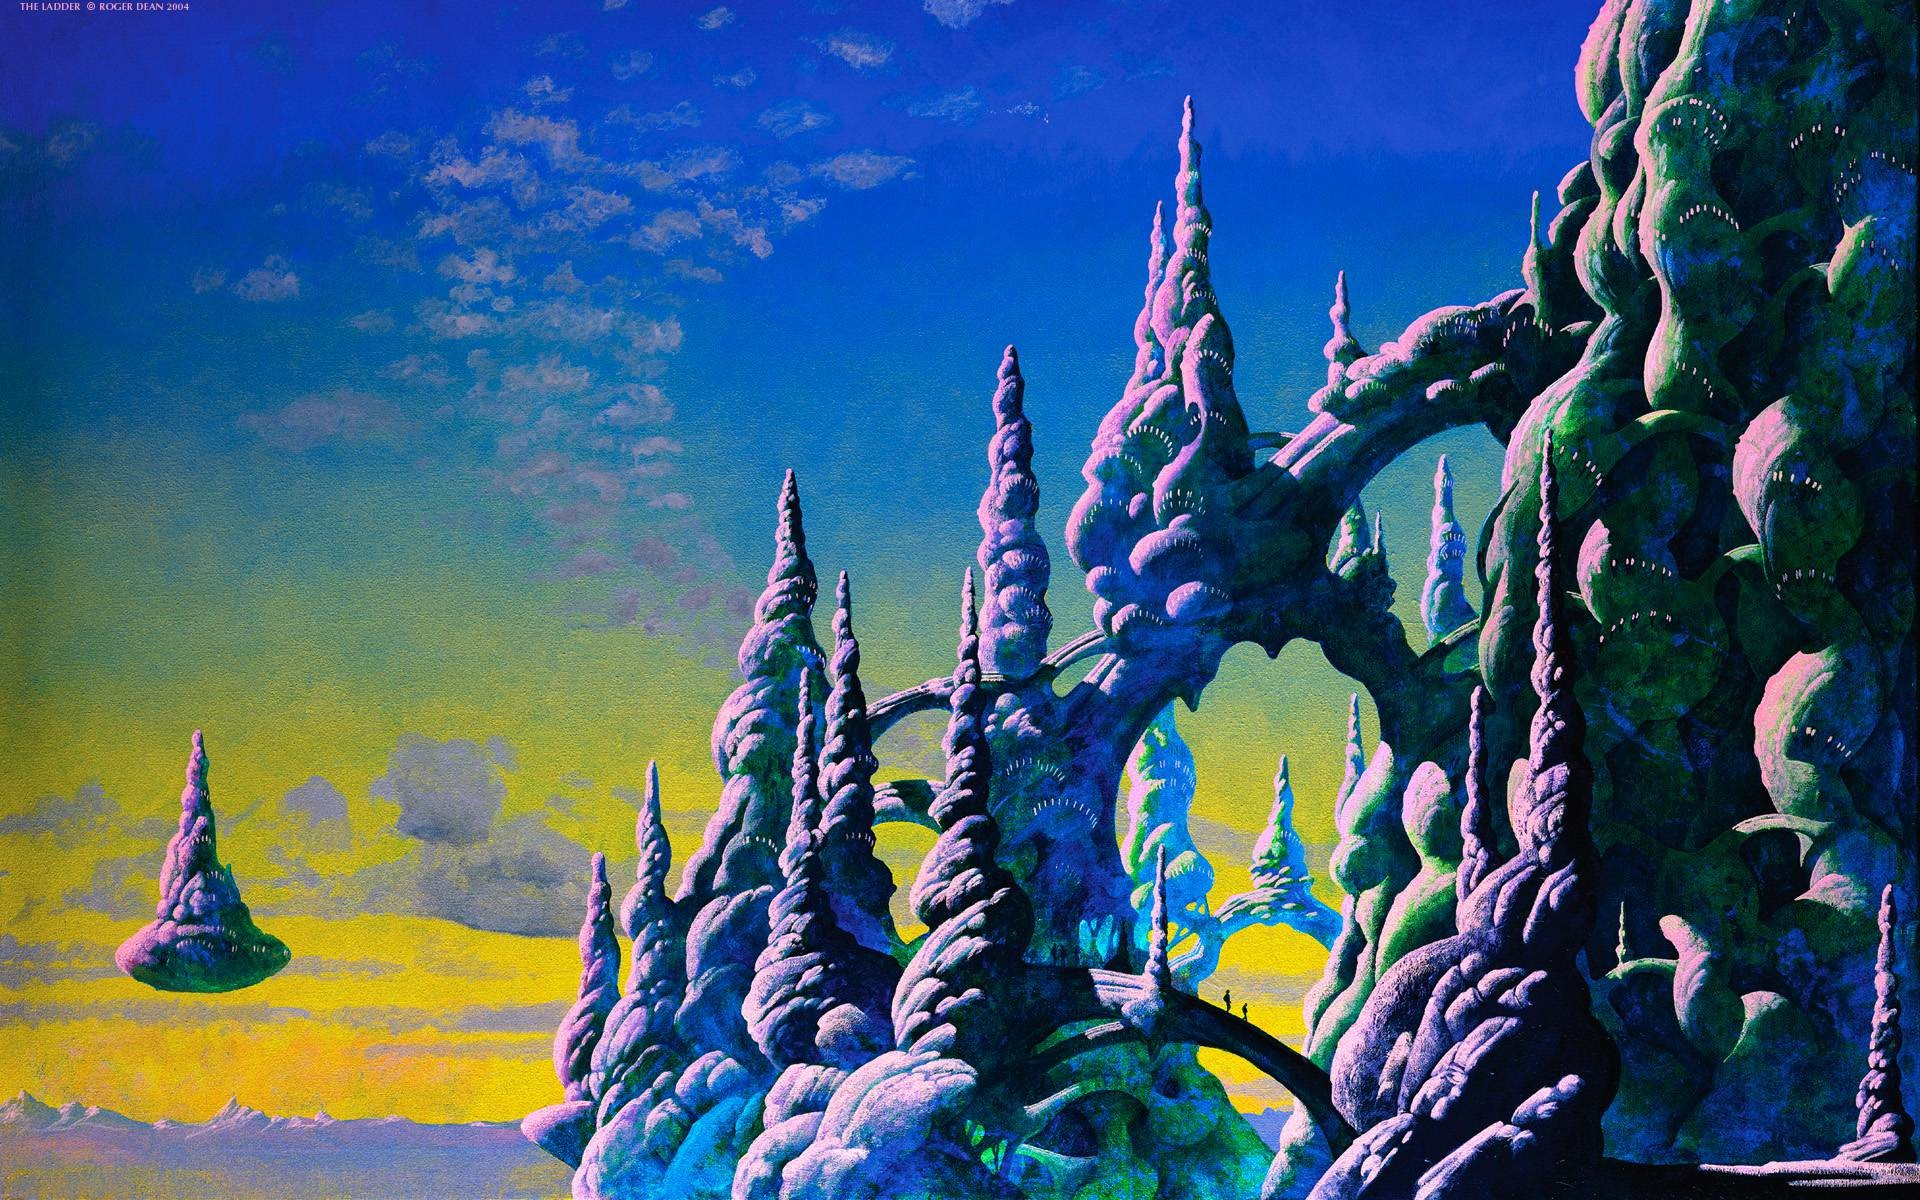 1920x1200 Wallpapers Roger Dean High Quality And Resolution Ii